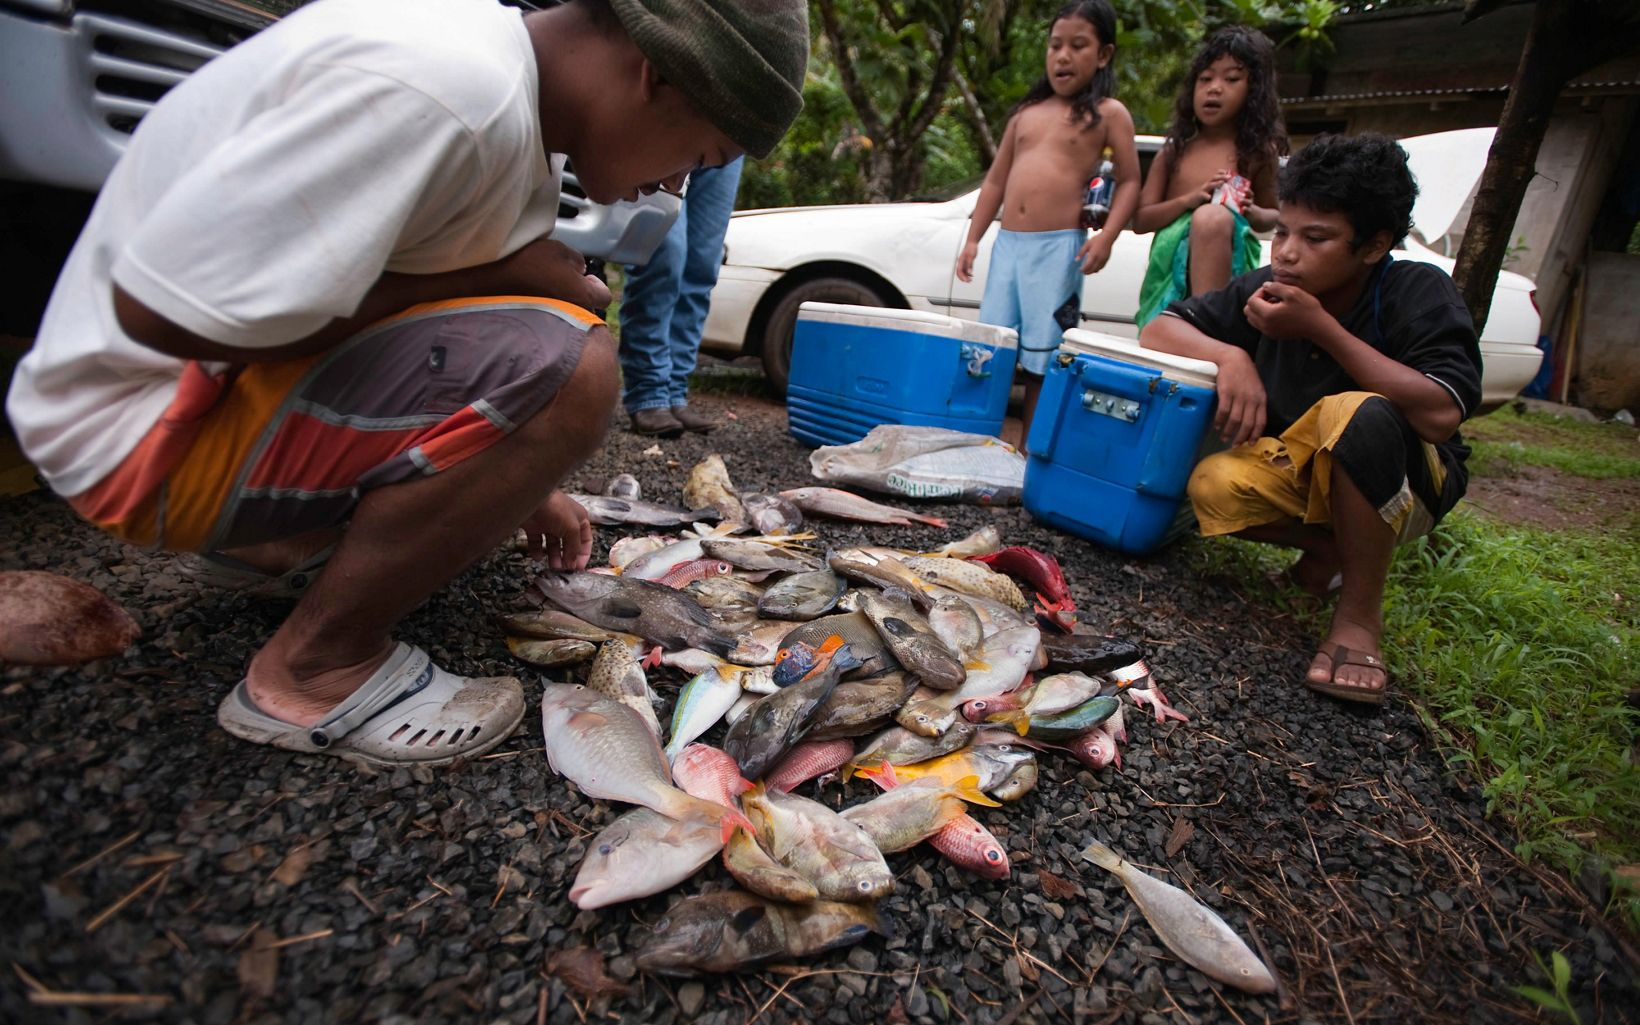 Members of the Paulino family examine their catch some of which they will sell to other members of their village community.